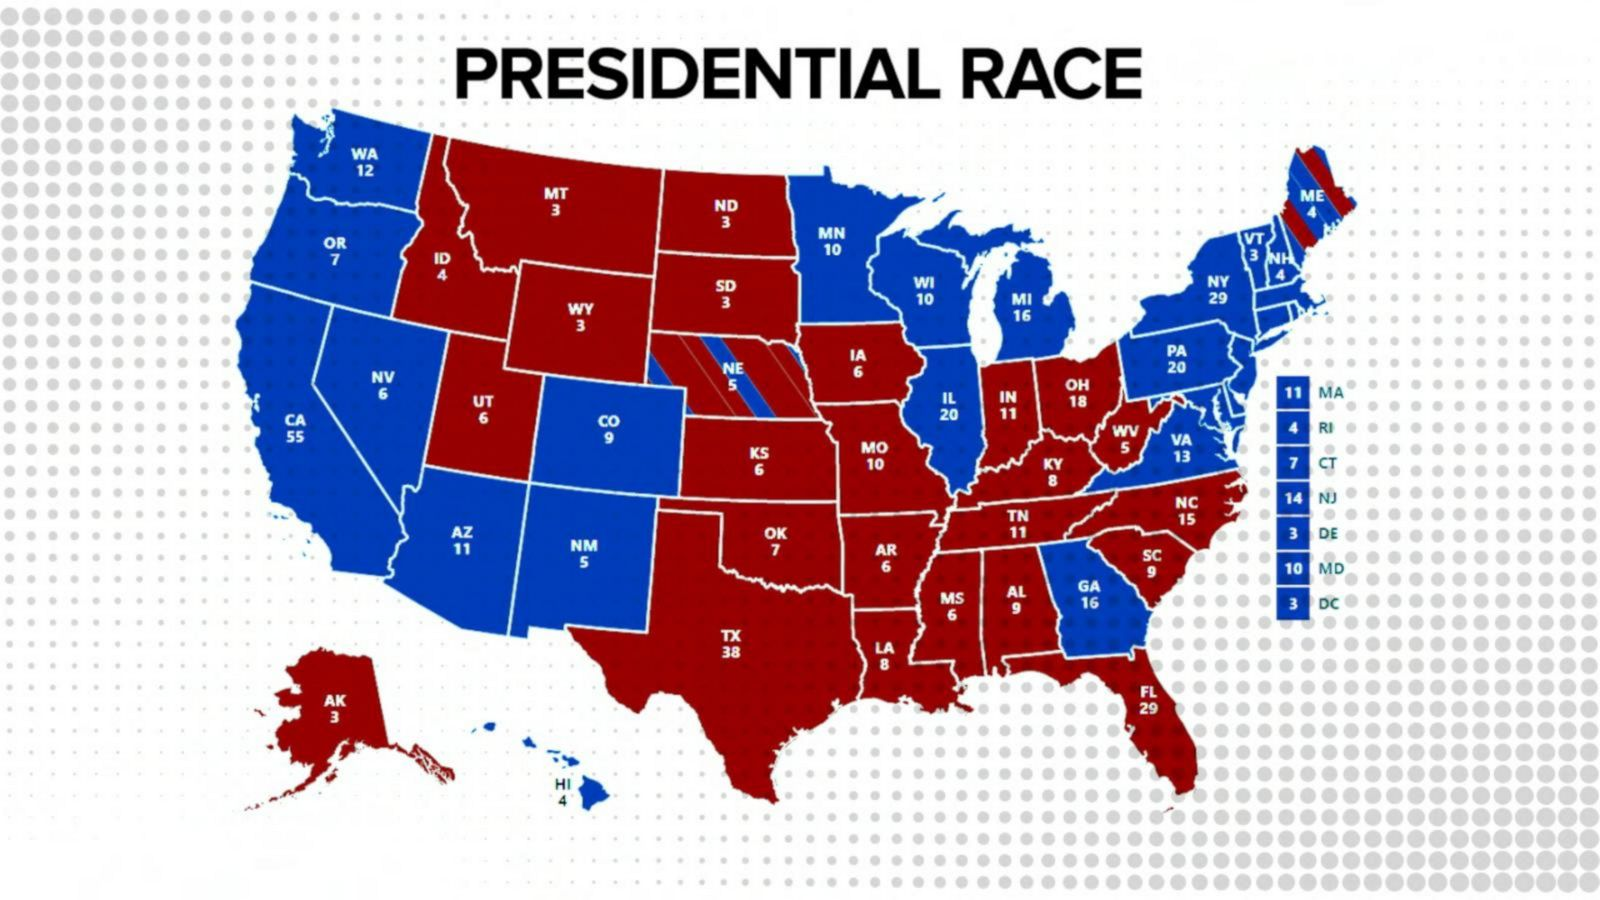 'I buy that COVID was a factor in polls underestimating' GOP: Nate Silver